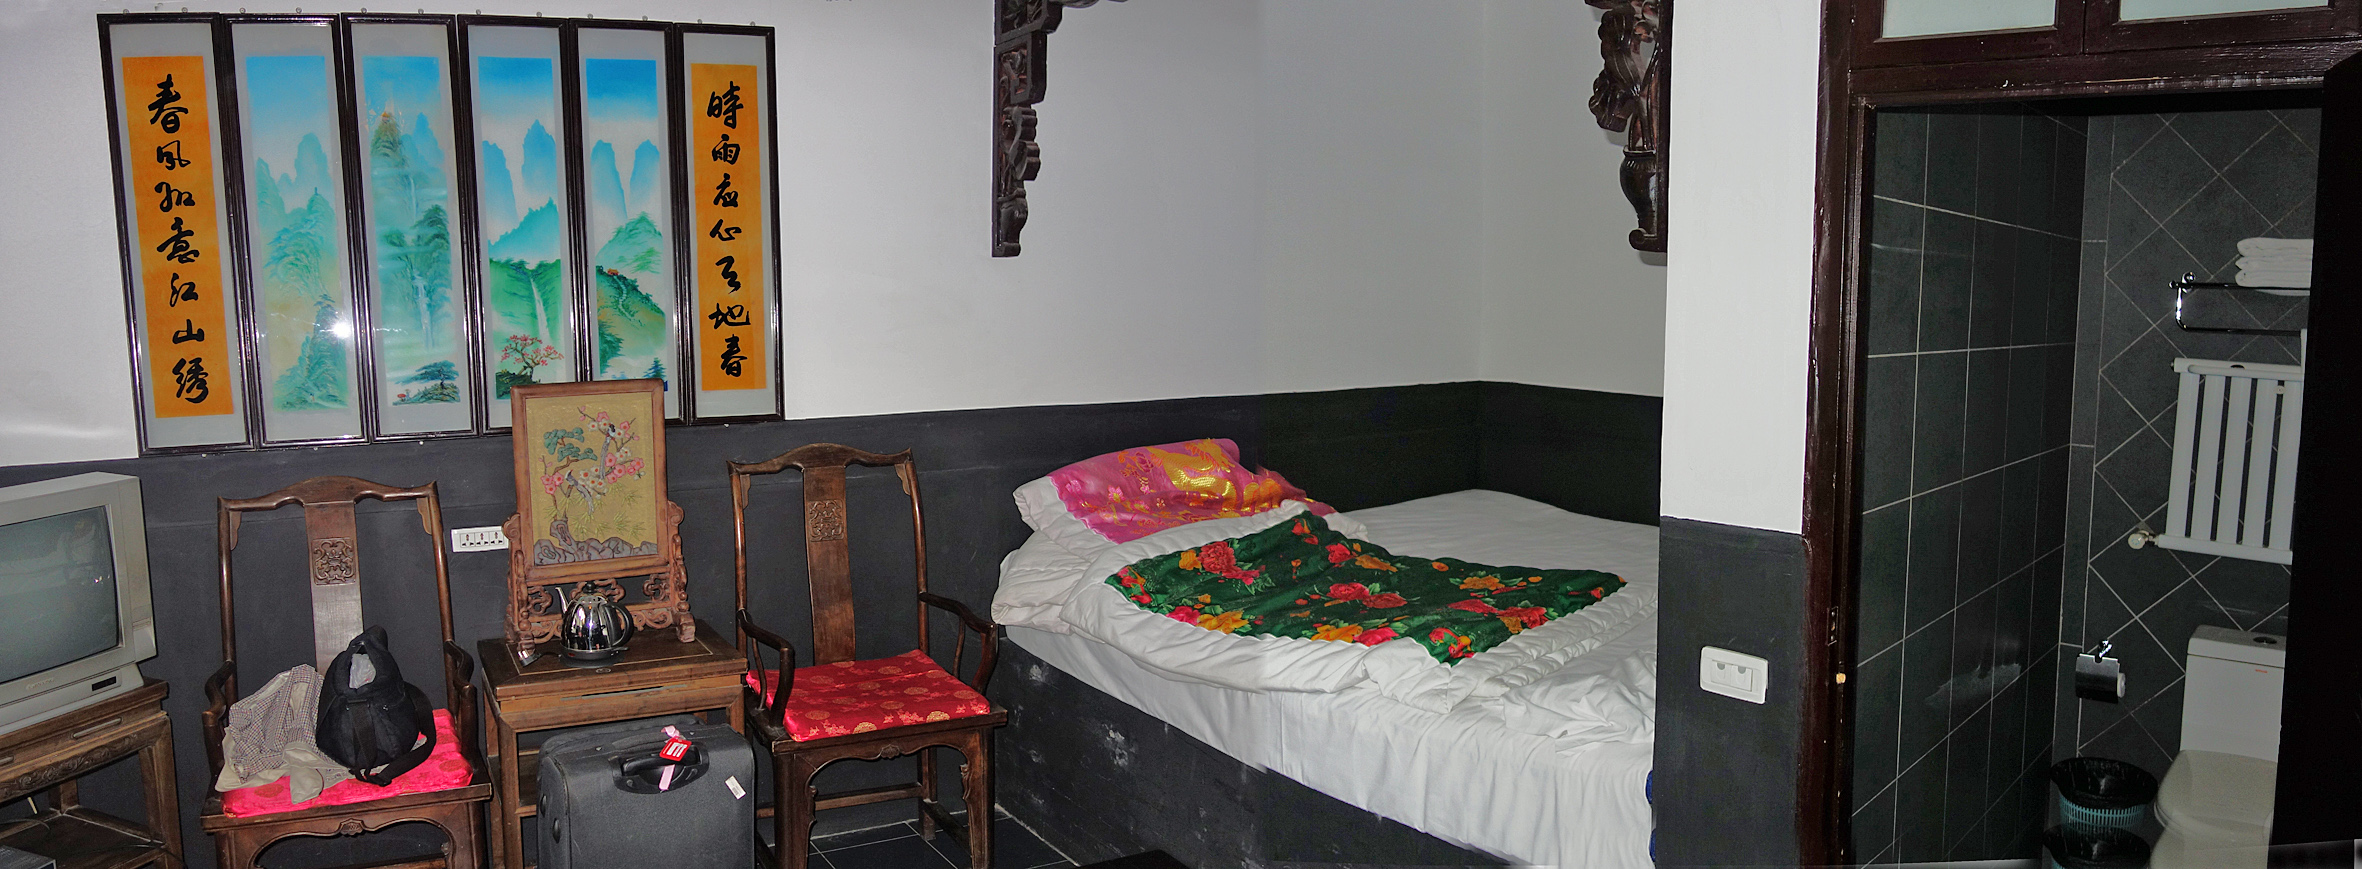 Pingyao - living room and bedroom